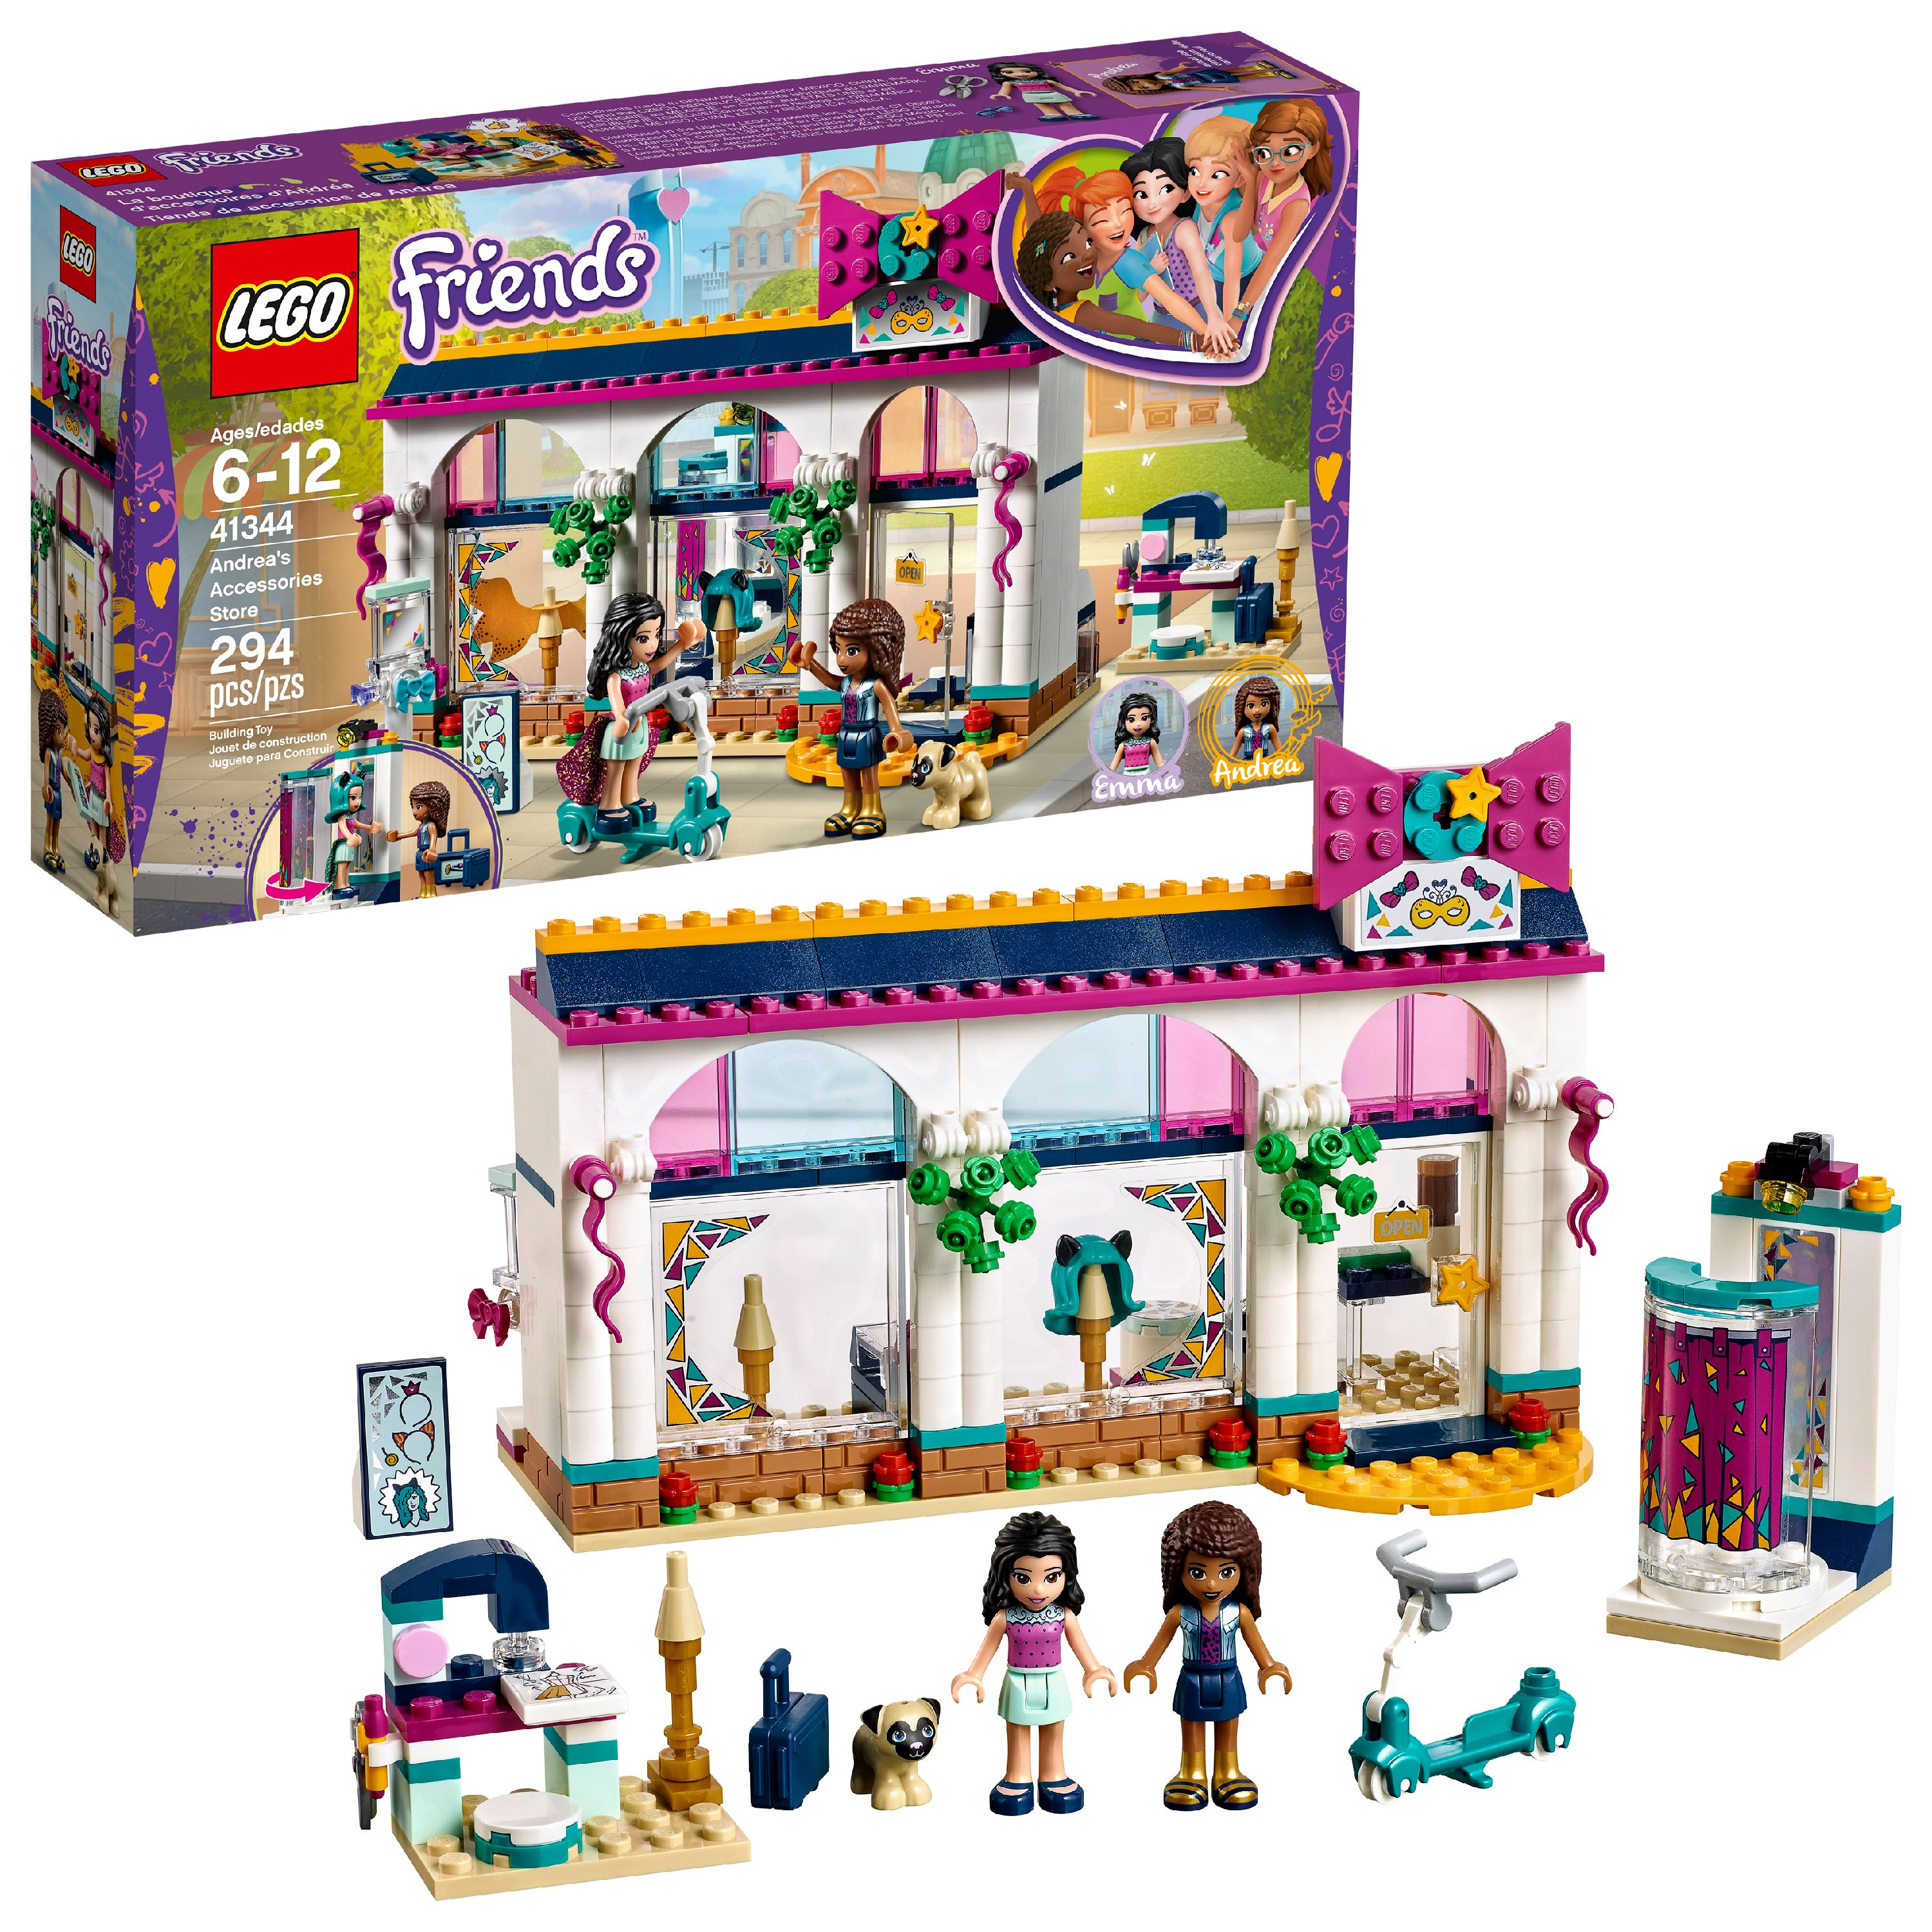 LEGO Friends Andrea's Accessories Store 41344 (294 Pieces)